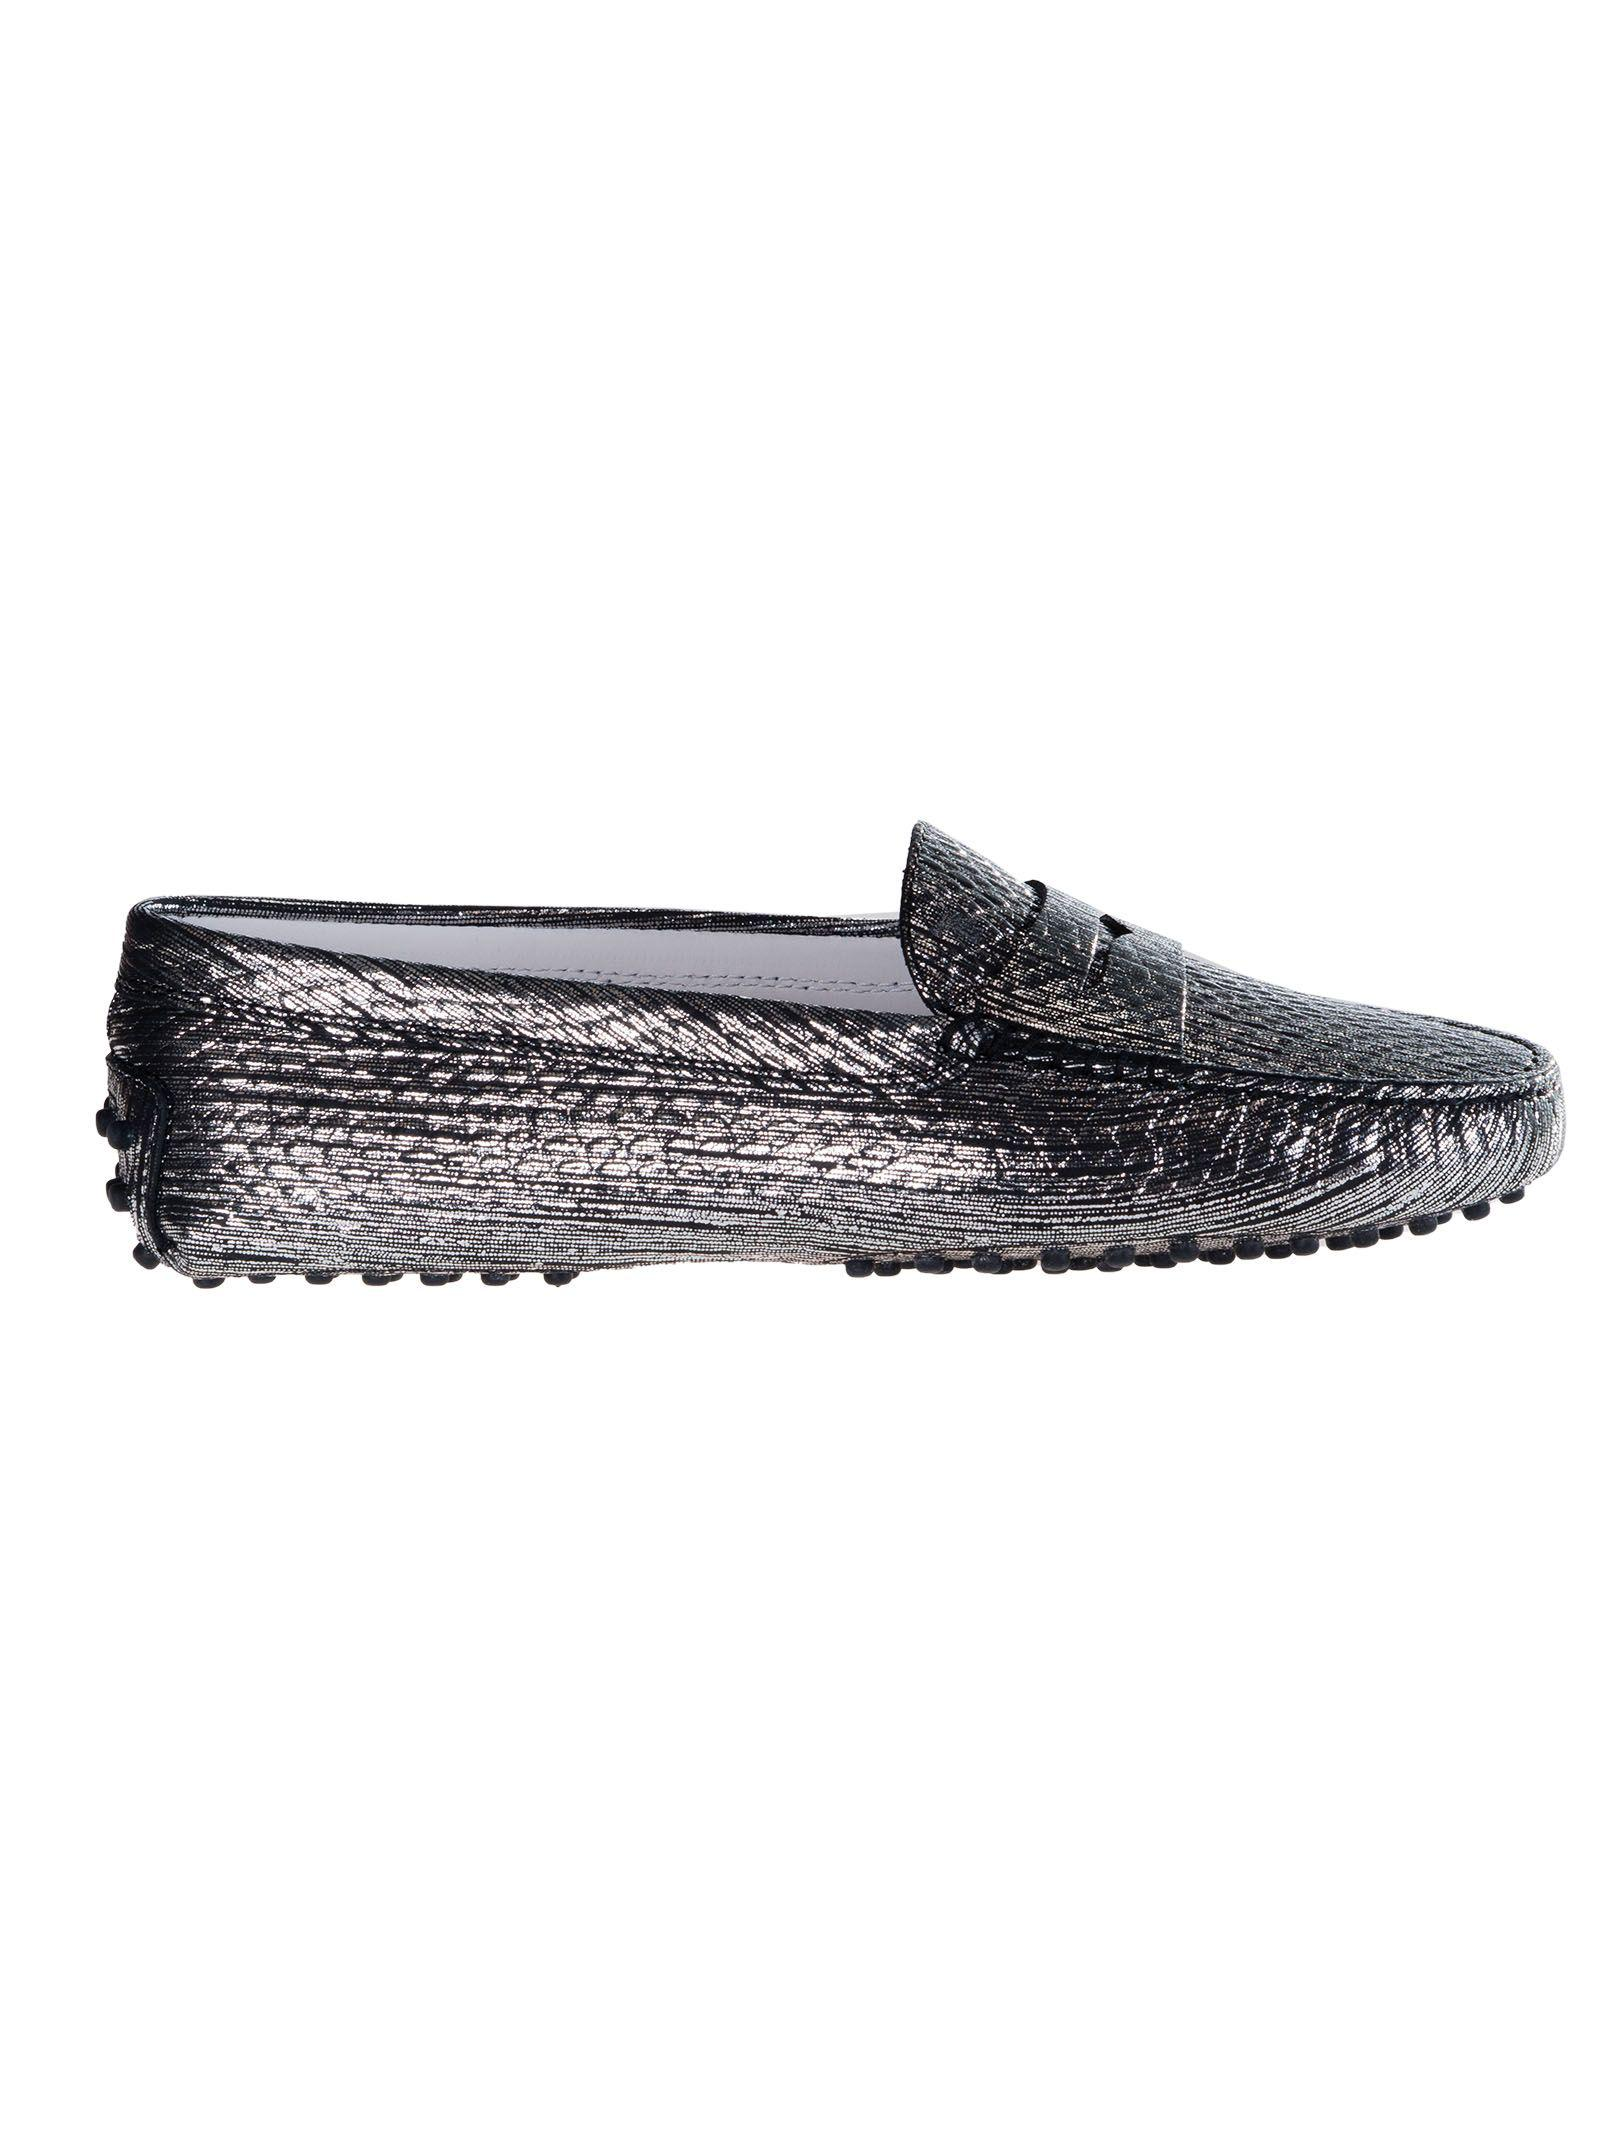 c81246cd8ad Lyst - Tod S Women s Silver grey Leather Loafers in Gray